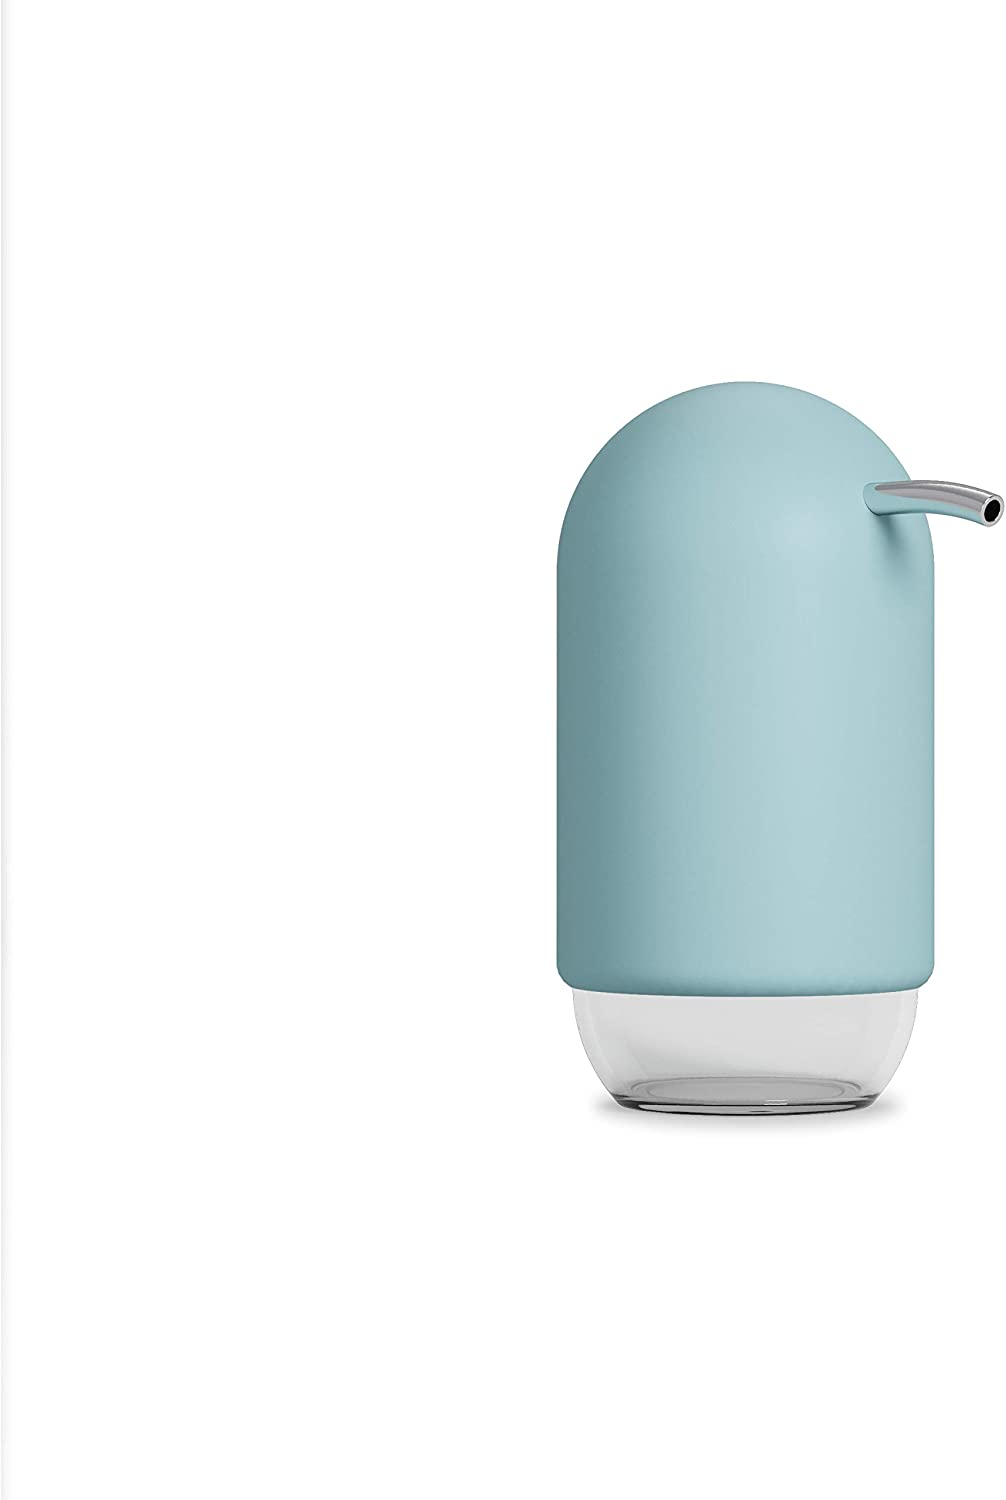 Umbra Touch Liquid Soap Pump Dispenser, Also Works with Hand Sanitizer, Easy to Refill, 8 oz (236.5 ml), Ocean Blue